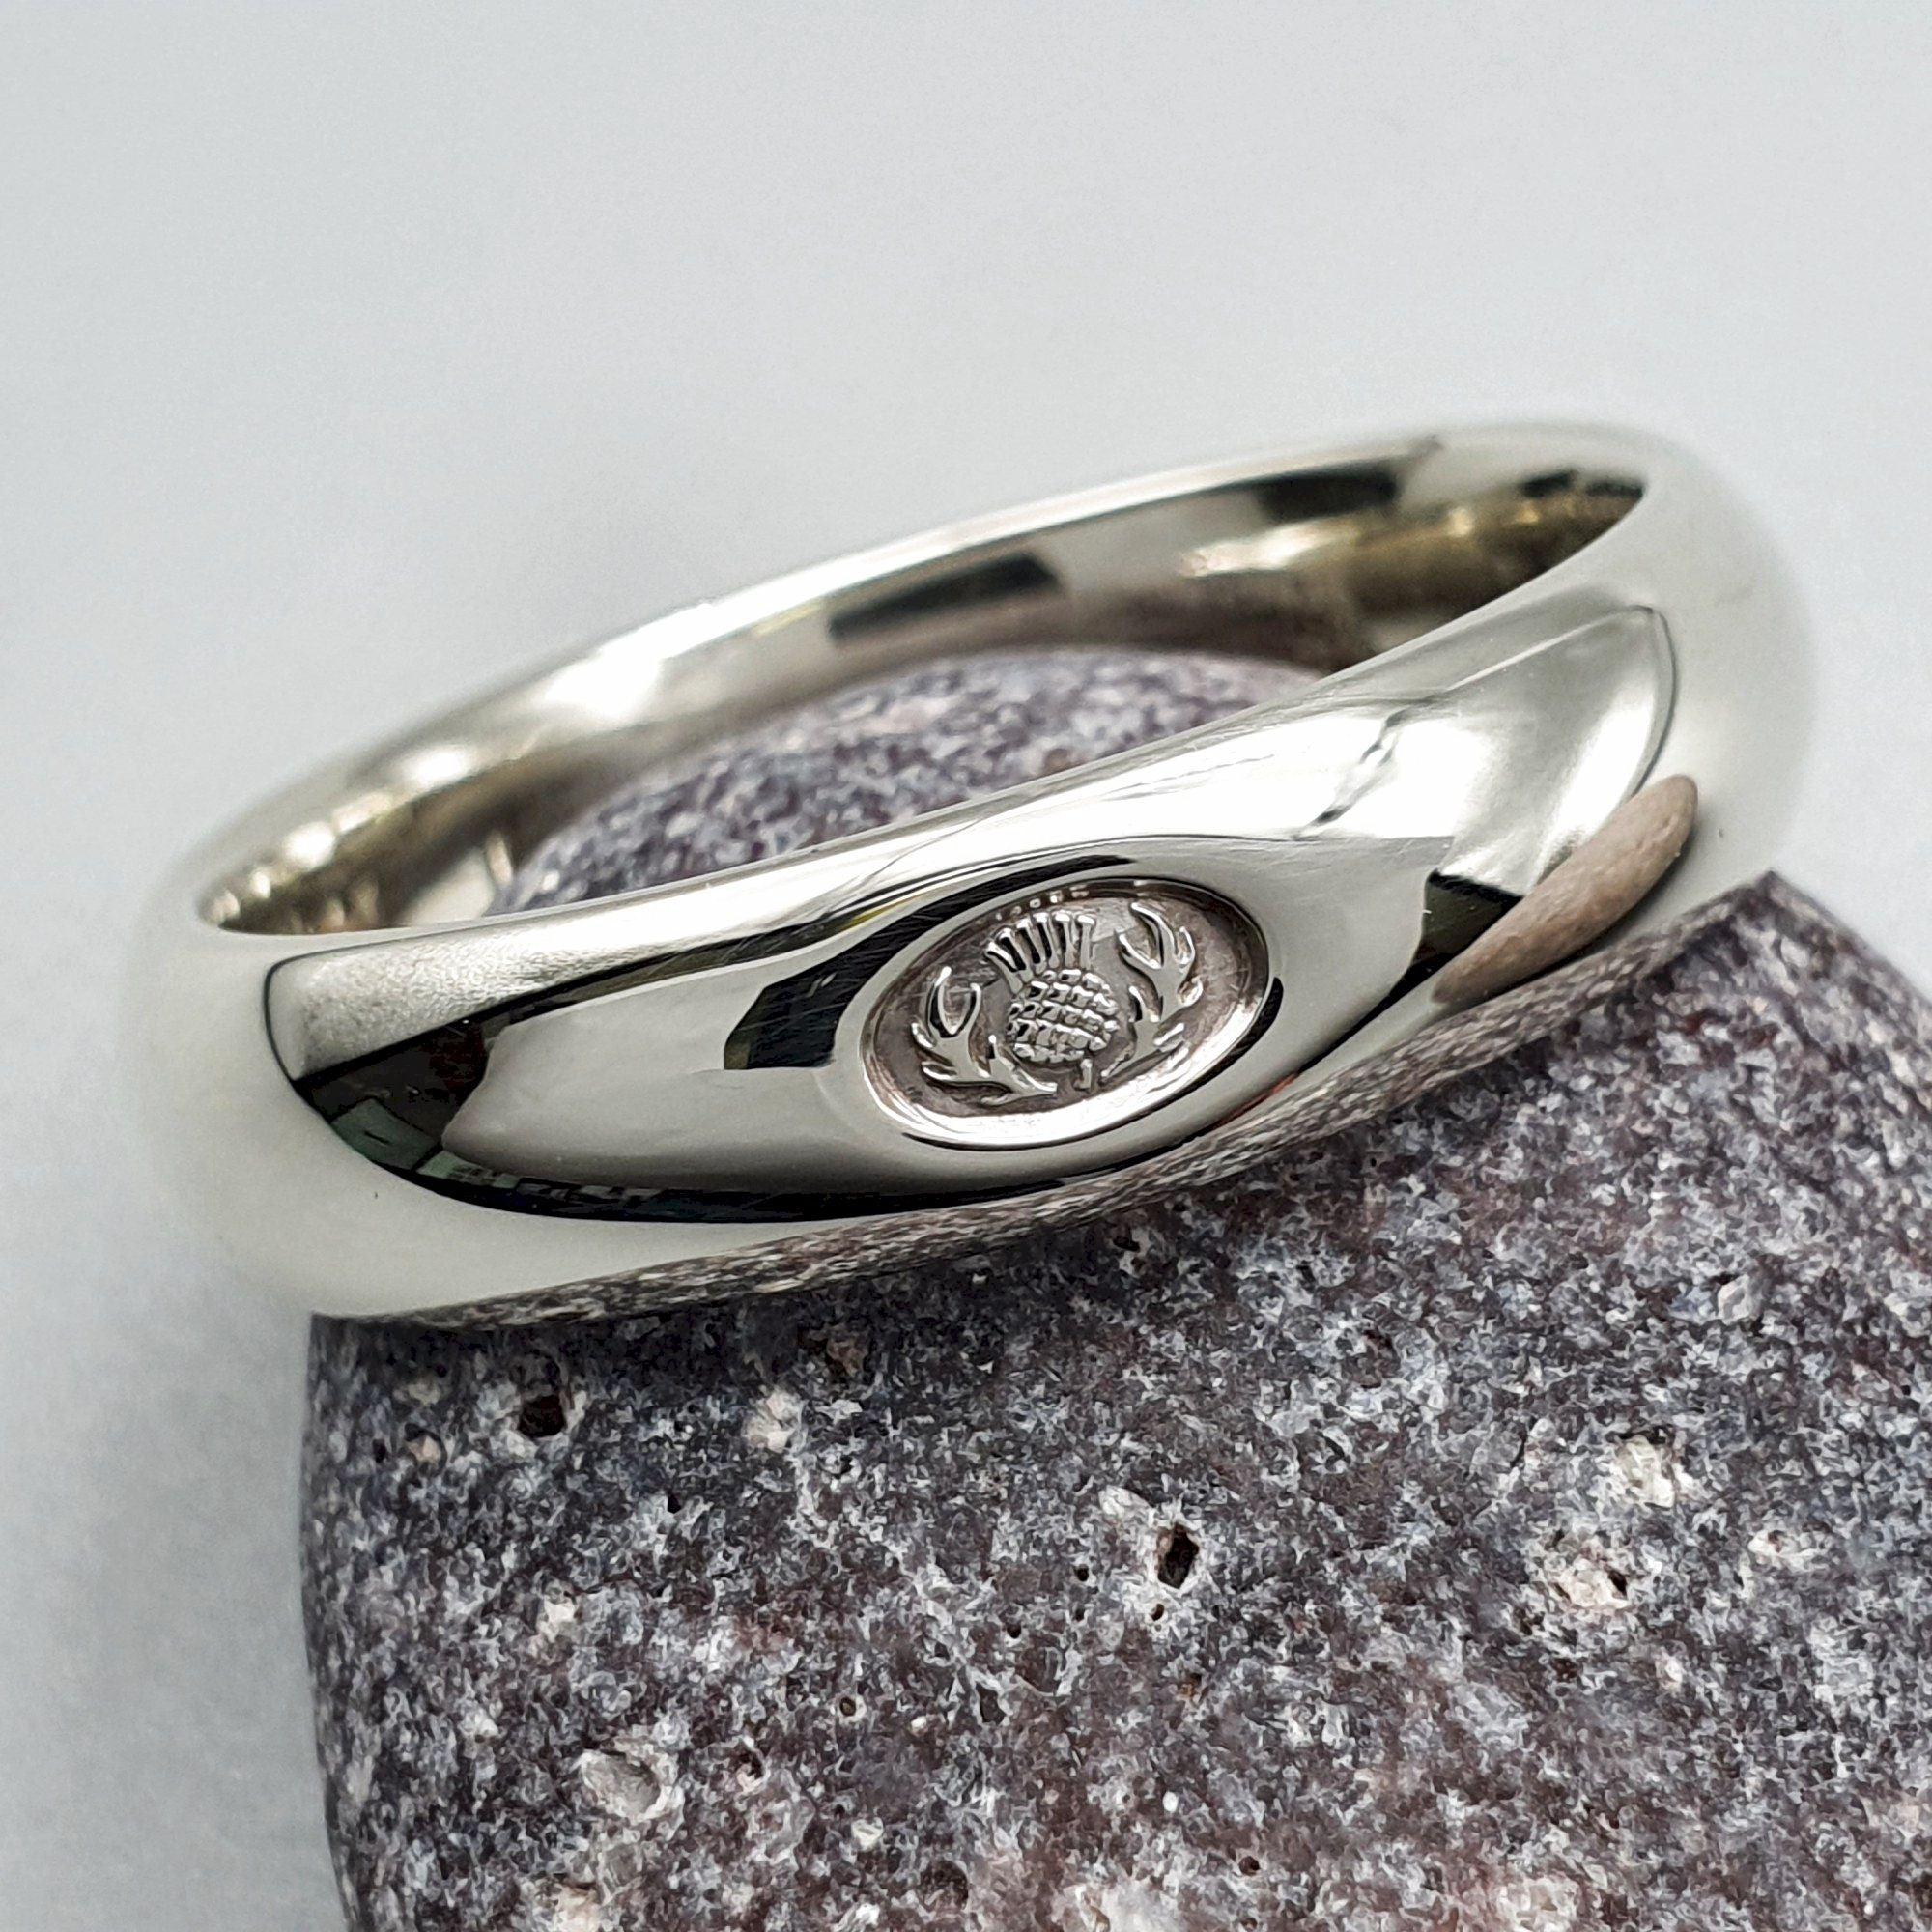 It is just a photo of Silver wedding ring 50mm to 50mm Scottish Thistle medium court band.